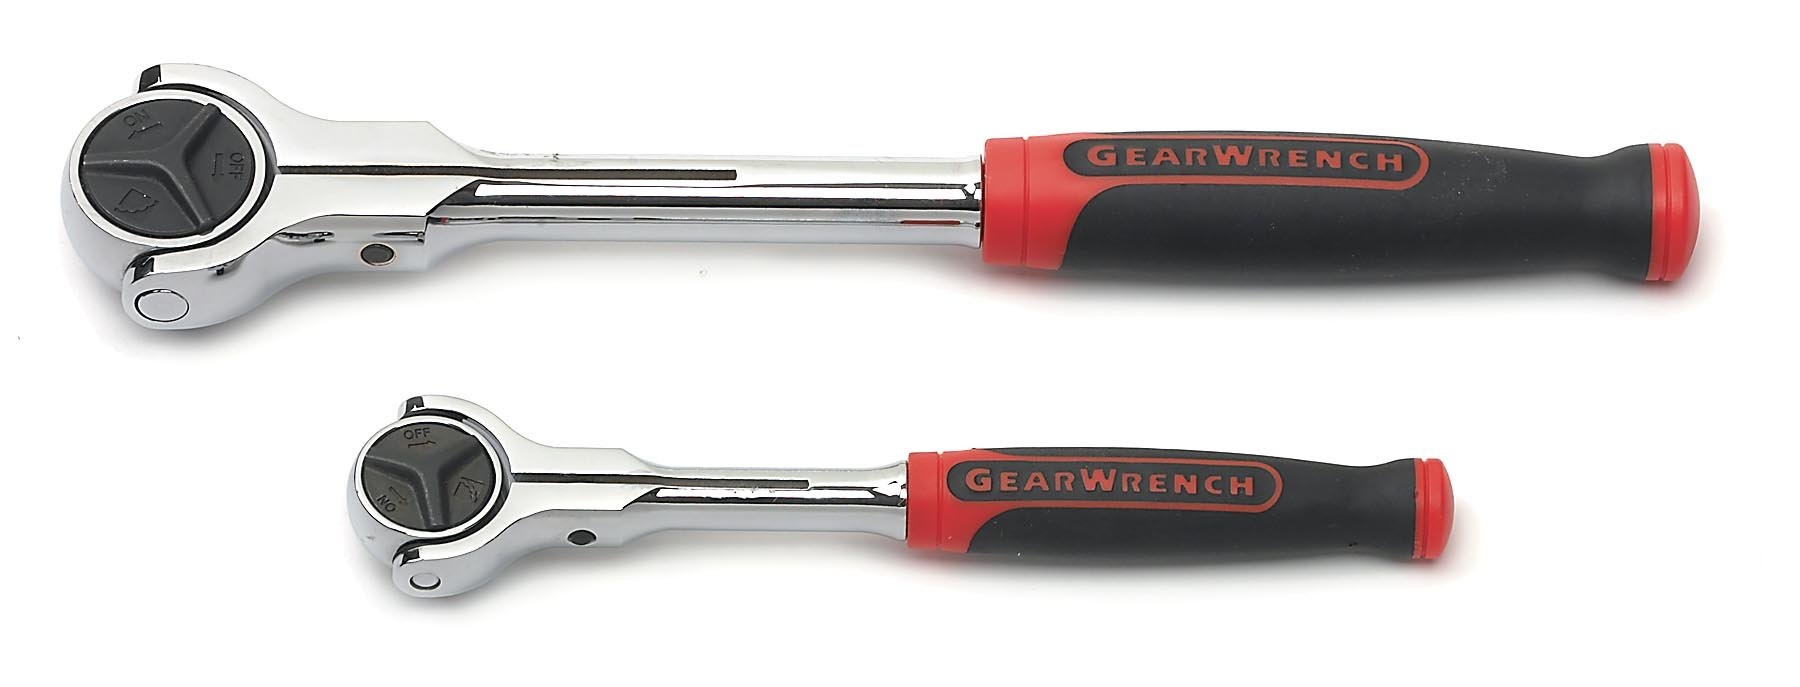 GearWrench 81223 2-Piece Cushion-Grip Roto Ratchet Set